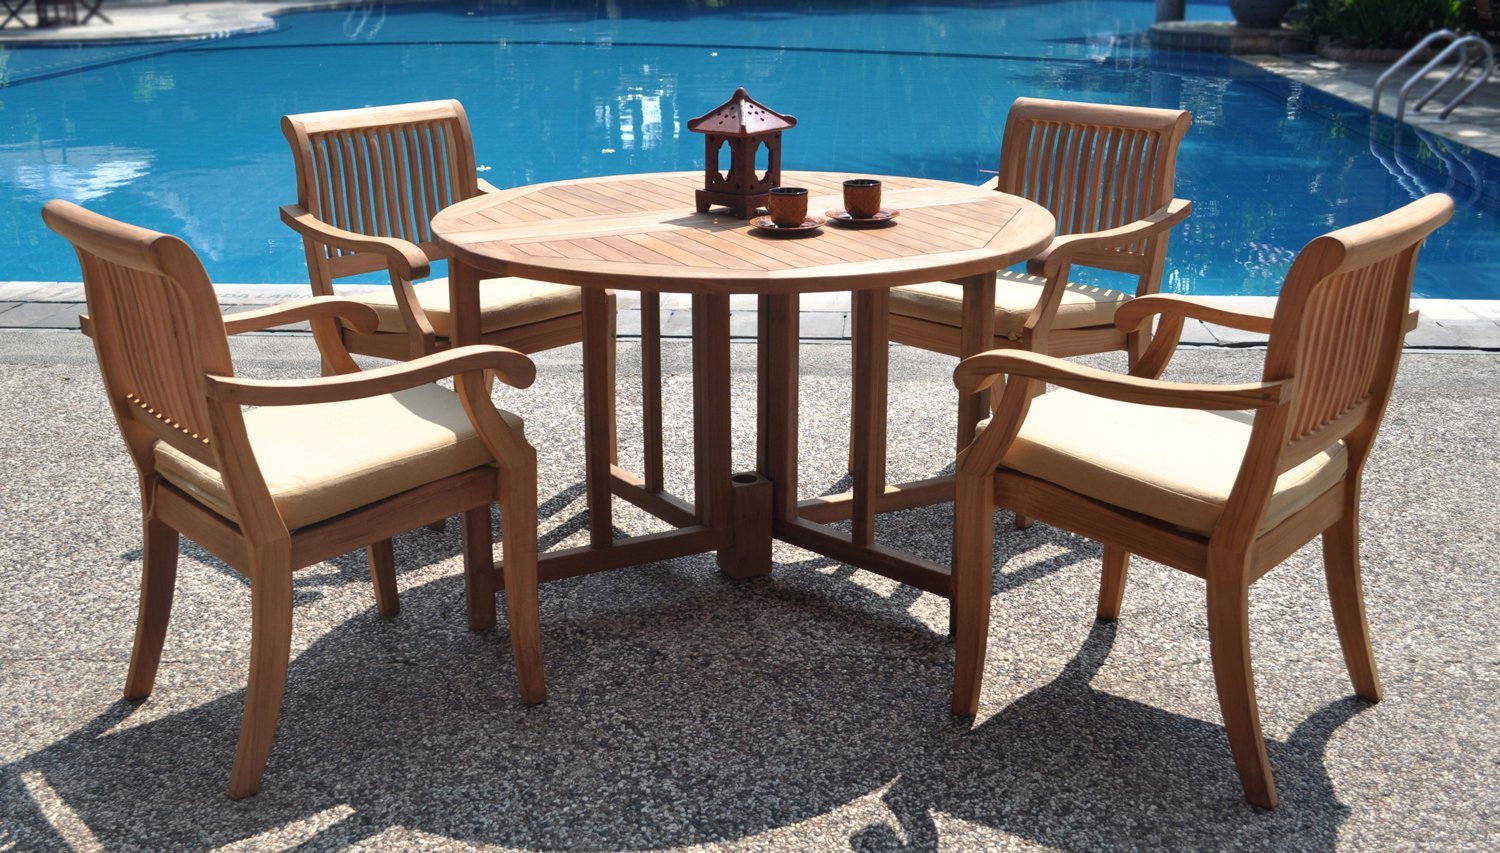 Phf 2021 Luxurious Teak Dining Set 48 Inch Round Table